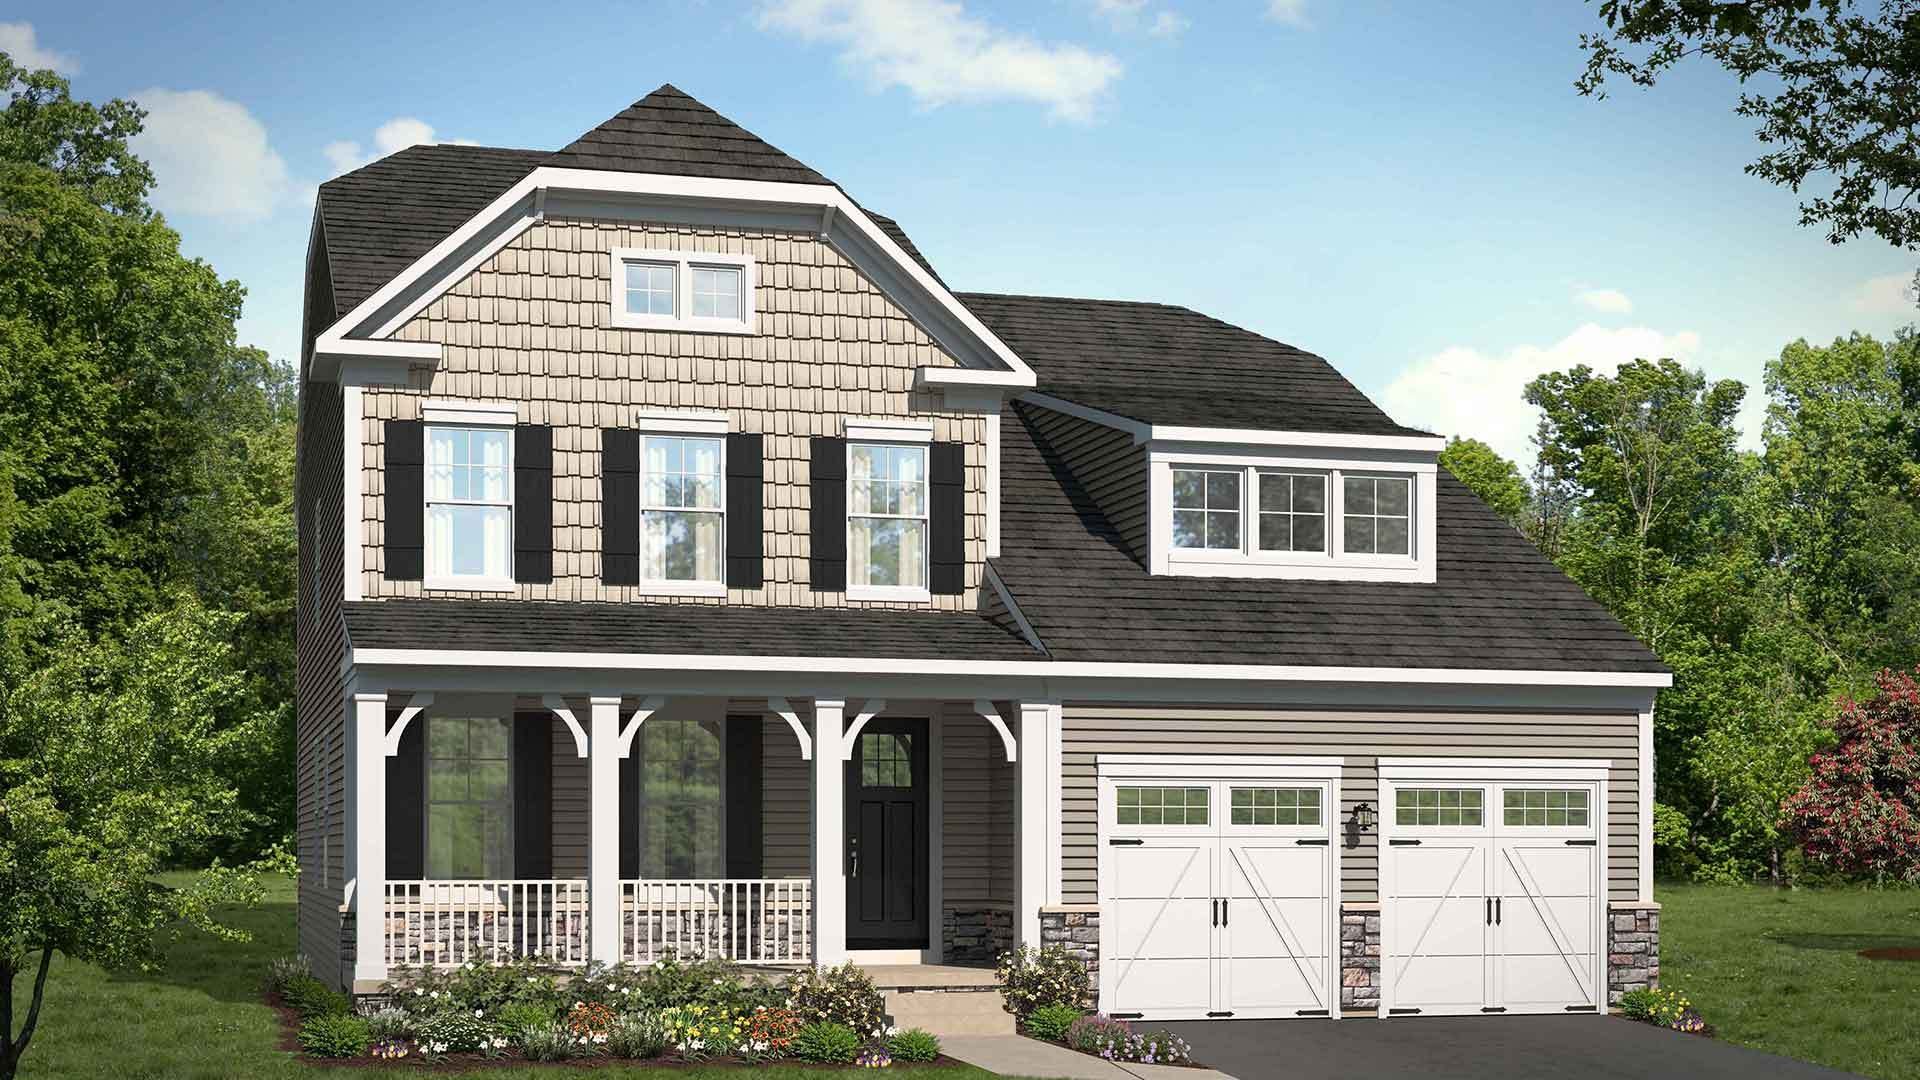 Single Family for Active at Bradley Square - Lawrence 8920 Englewood Farms Drive Manassas, Virginia 20112 United States